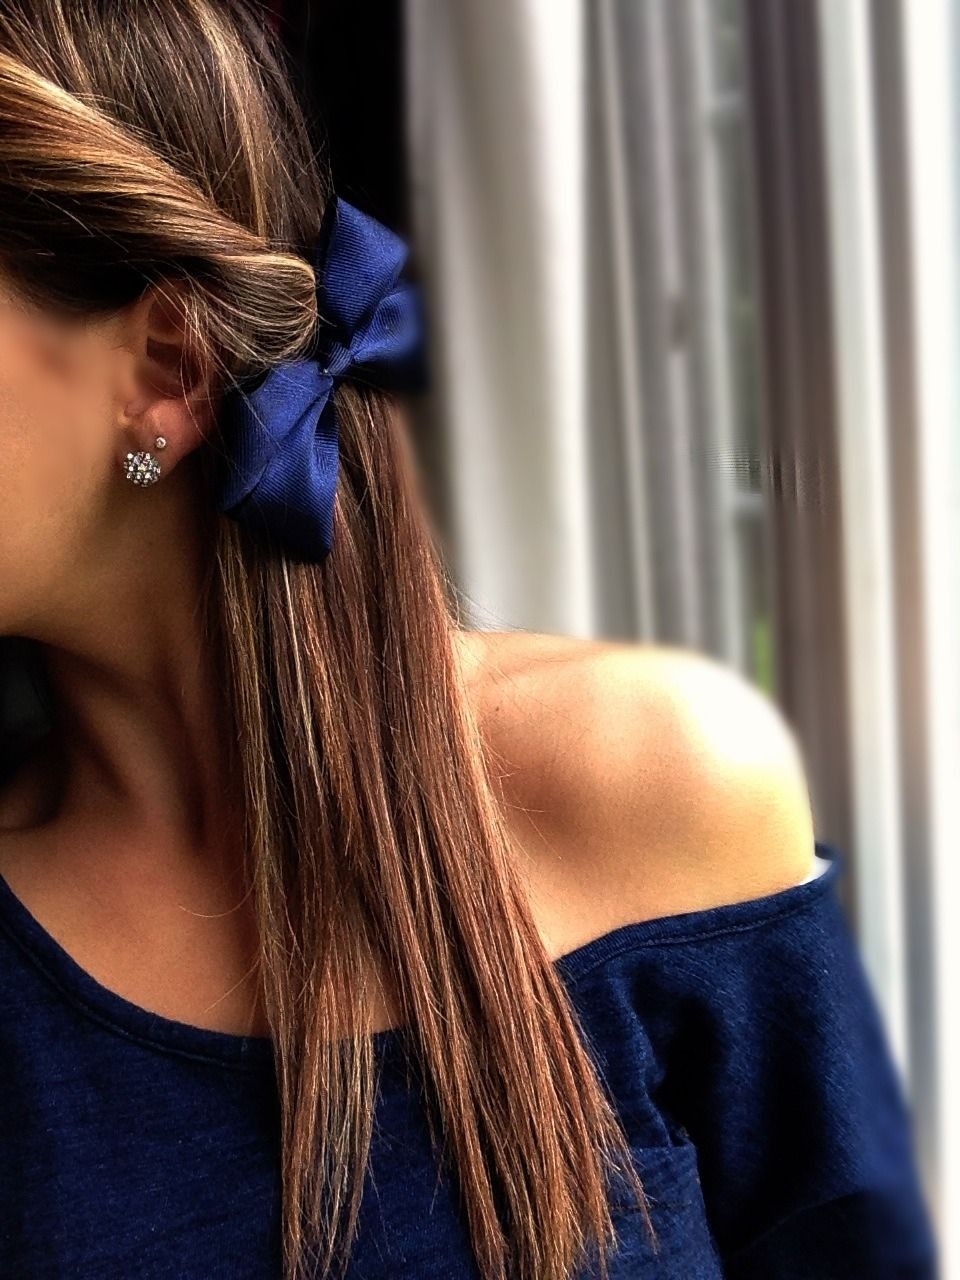 Pin by Haley Wofford on Hair Ideas | Pinterest